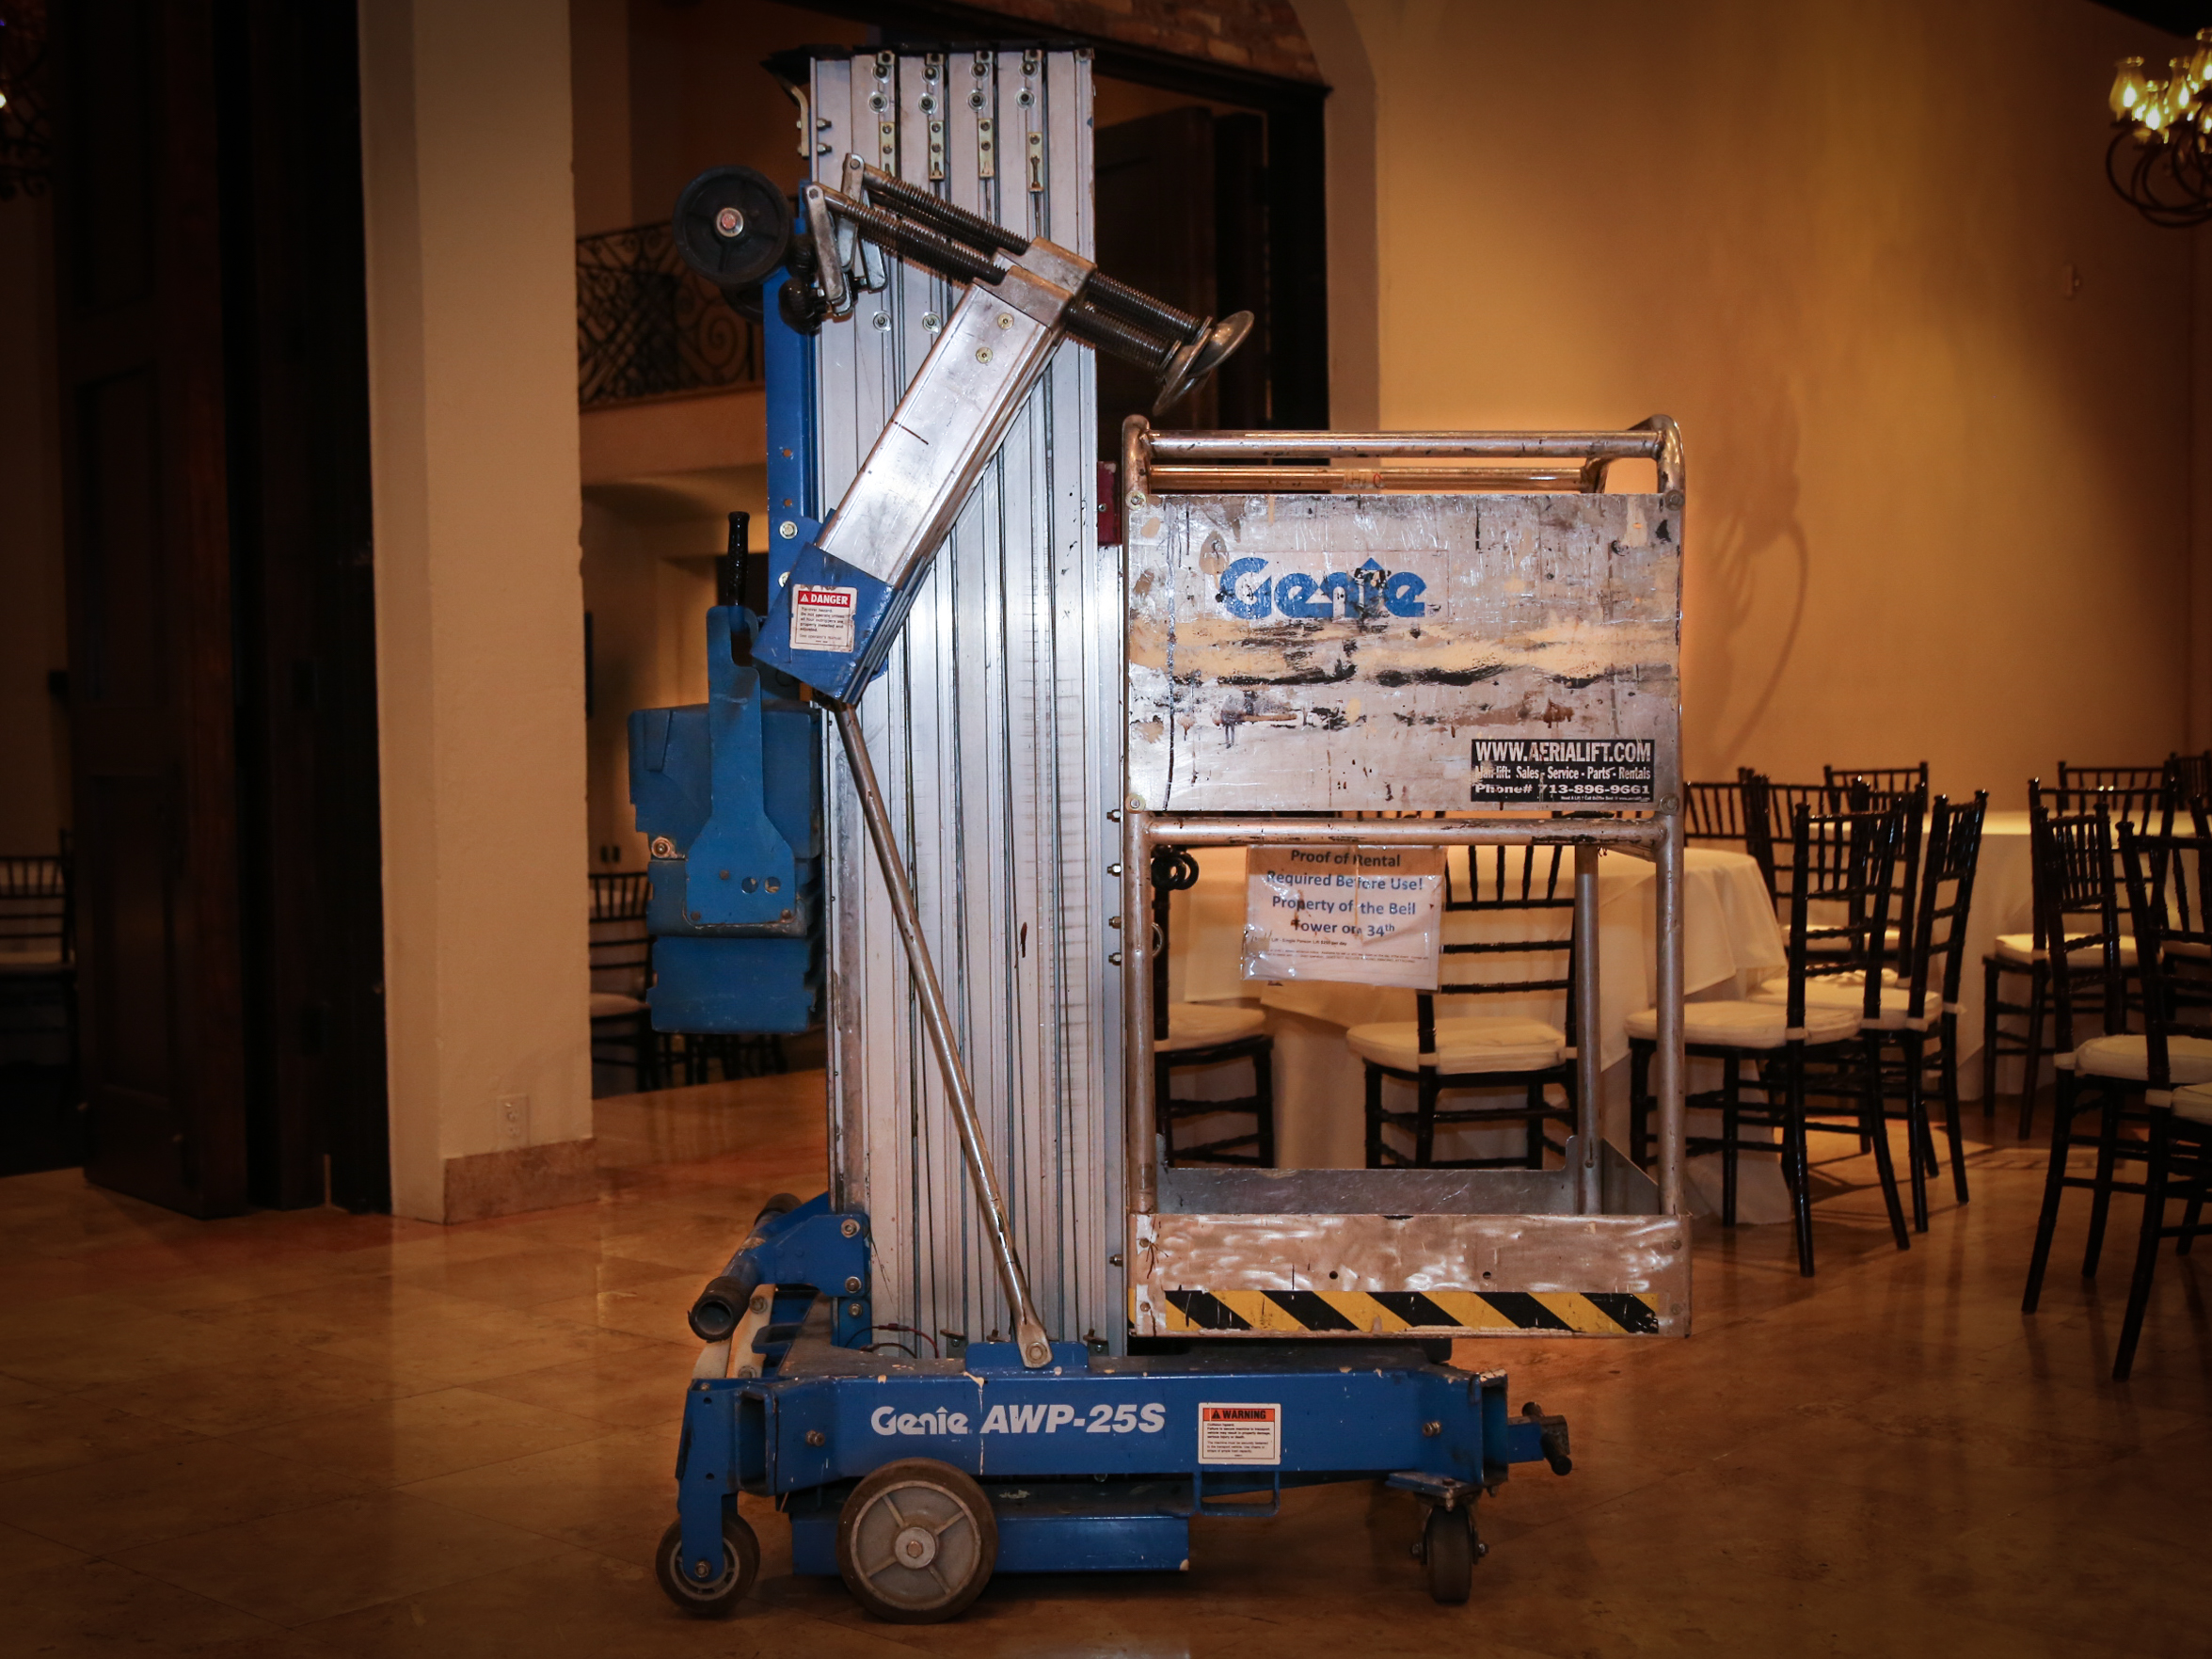 Scissor Lift - One Person Lift $250